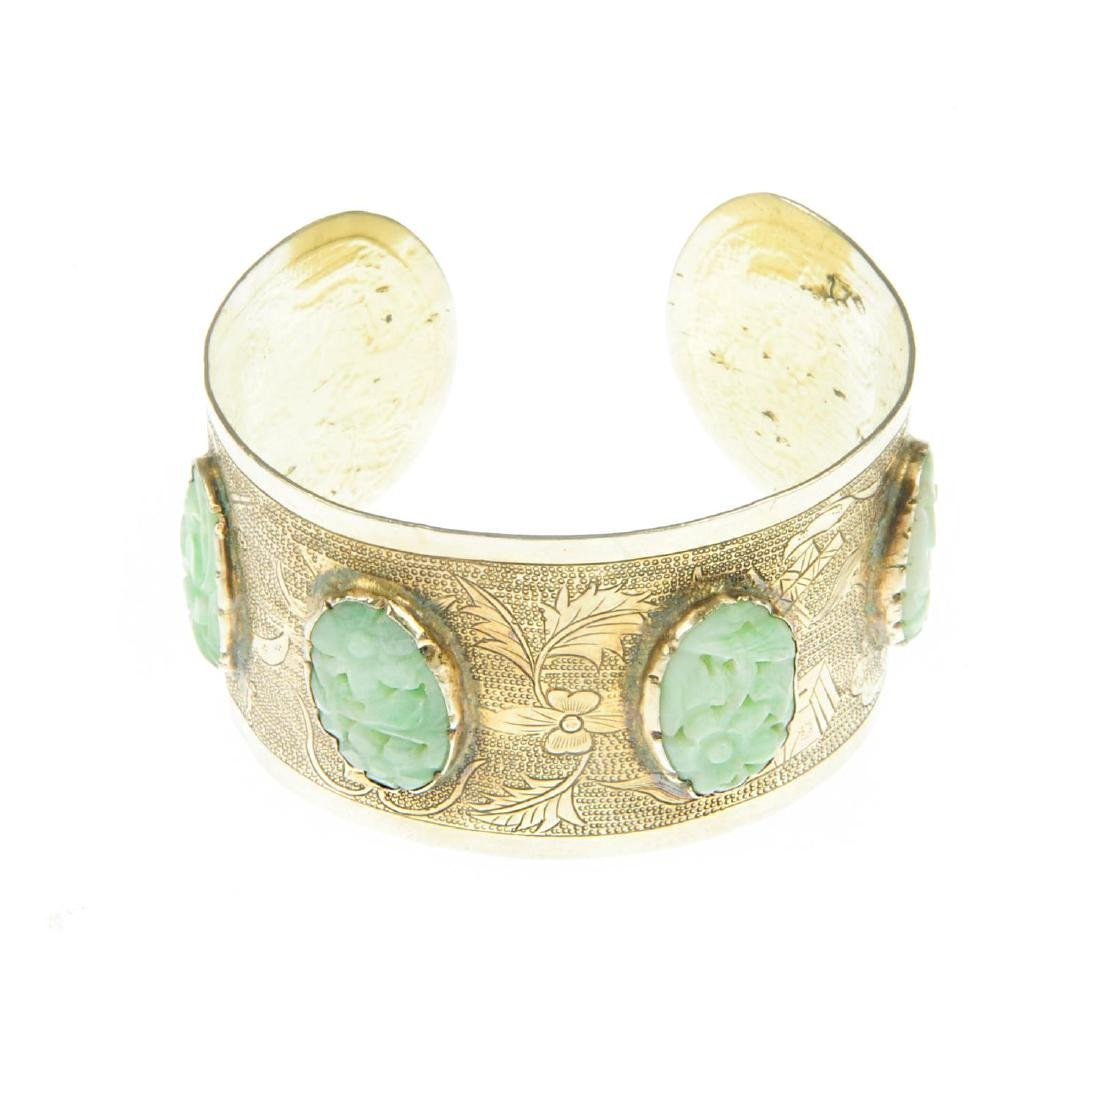 A Chinese bangle with carved jade panels. The open